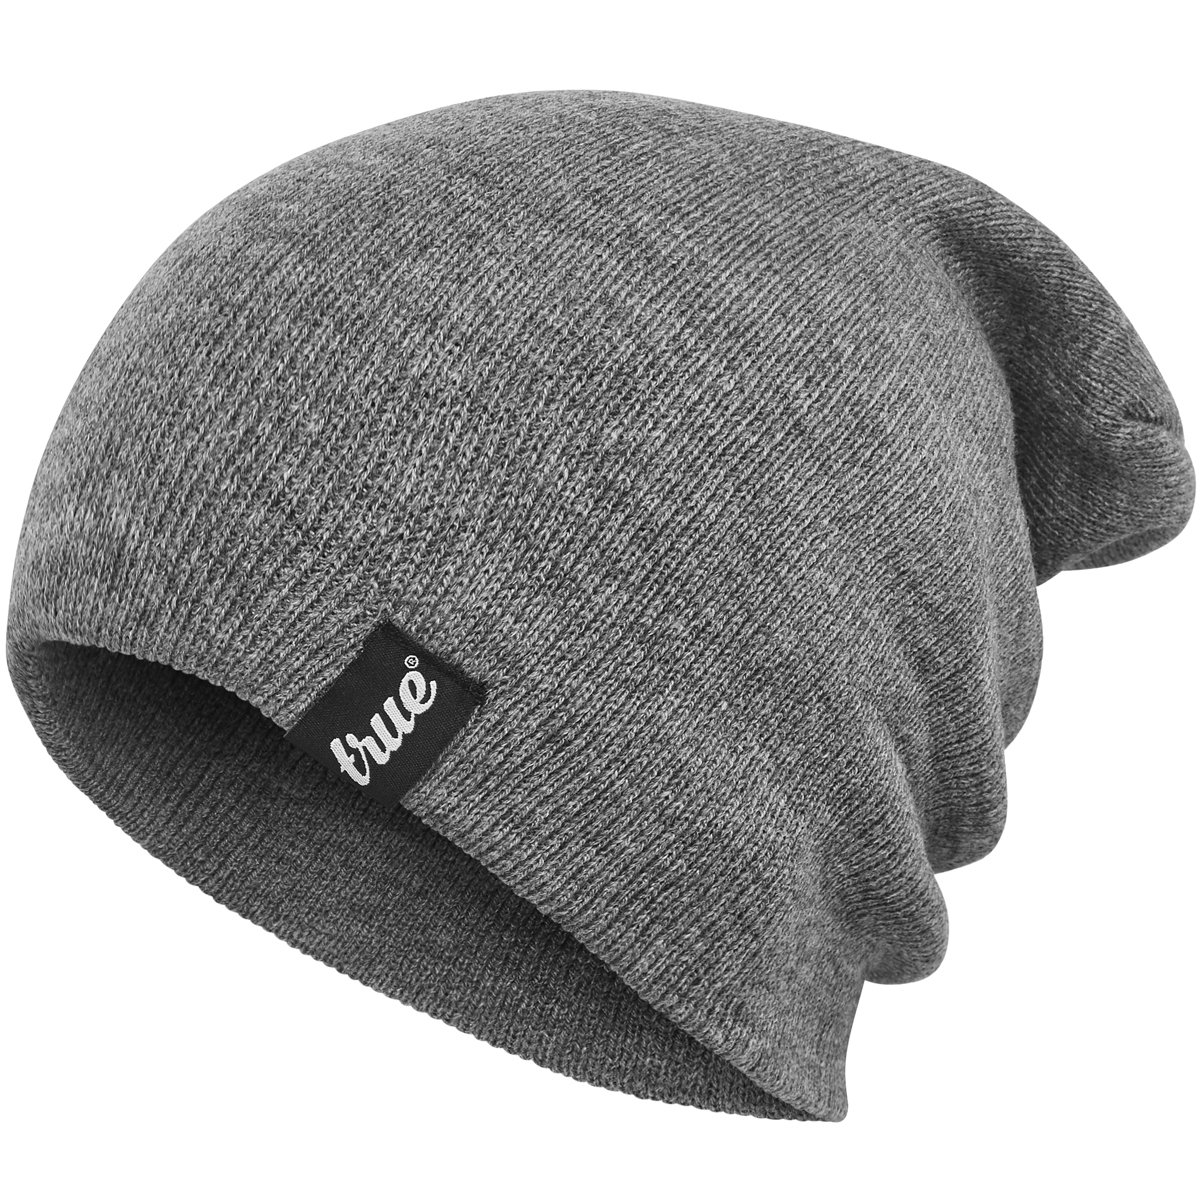 d805bddb673 TRUE VISION Mens Beanie Hat - One Size Soft Knitted Acrylic Unisex Slouch  Toque product image